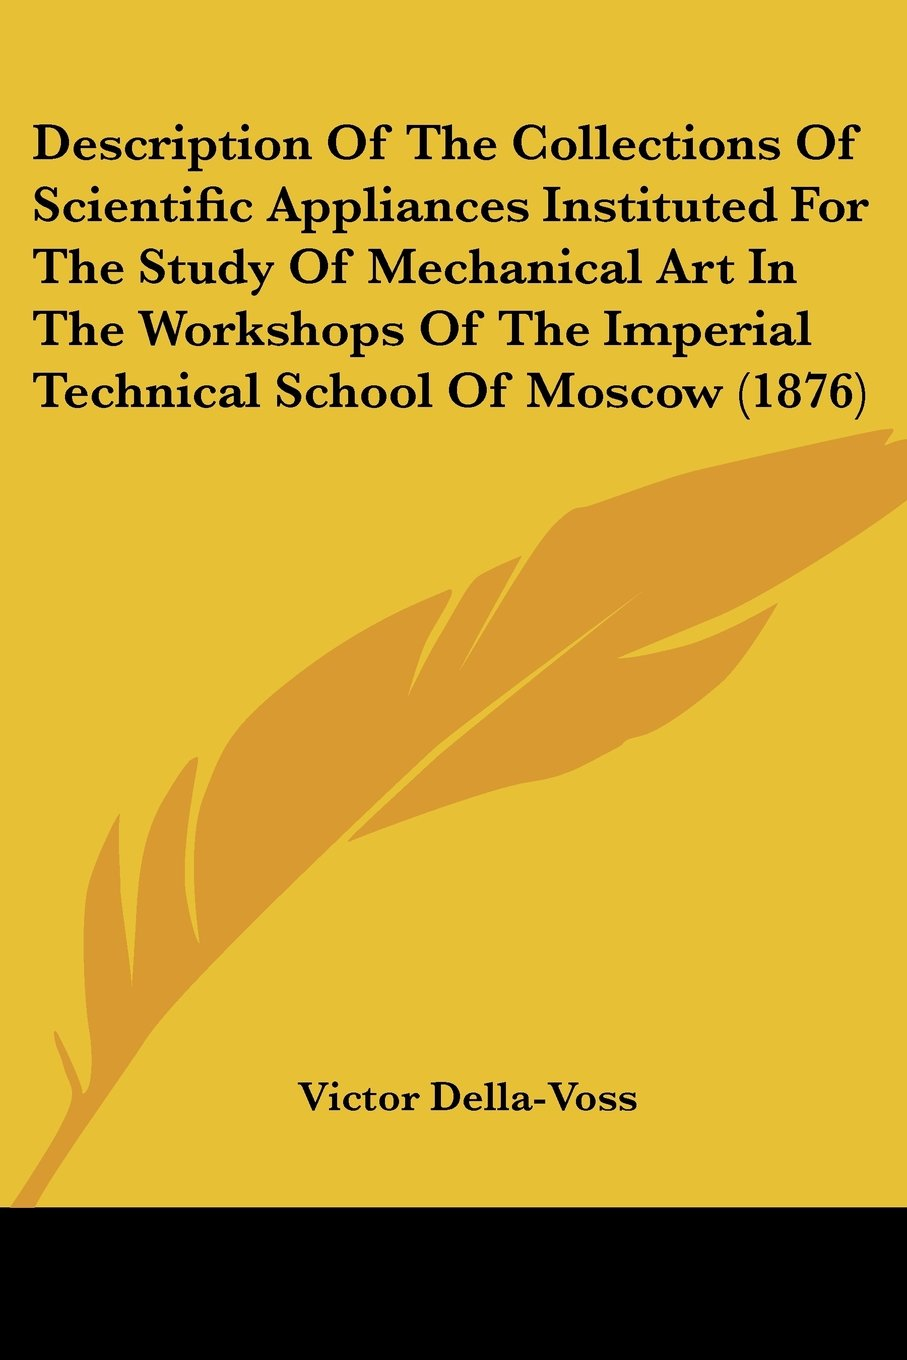 Download Description Of The Collections Of Scientific Appliances Instituted For The Study Of Mechanical Art In The Workshops Of The Imperial Technical School Of Moscow (1876) pdf epub